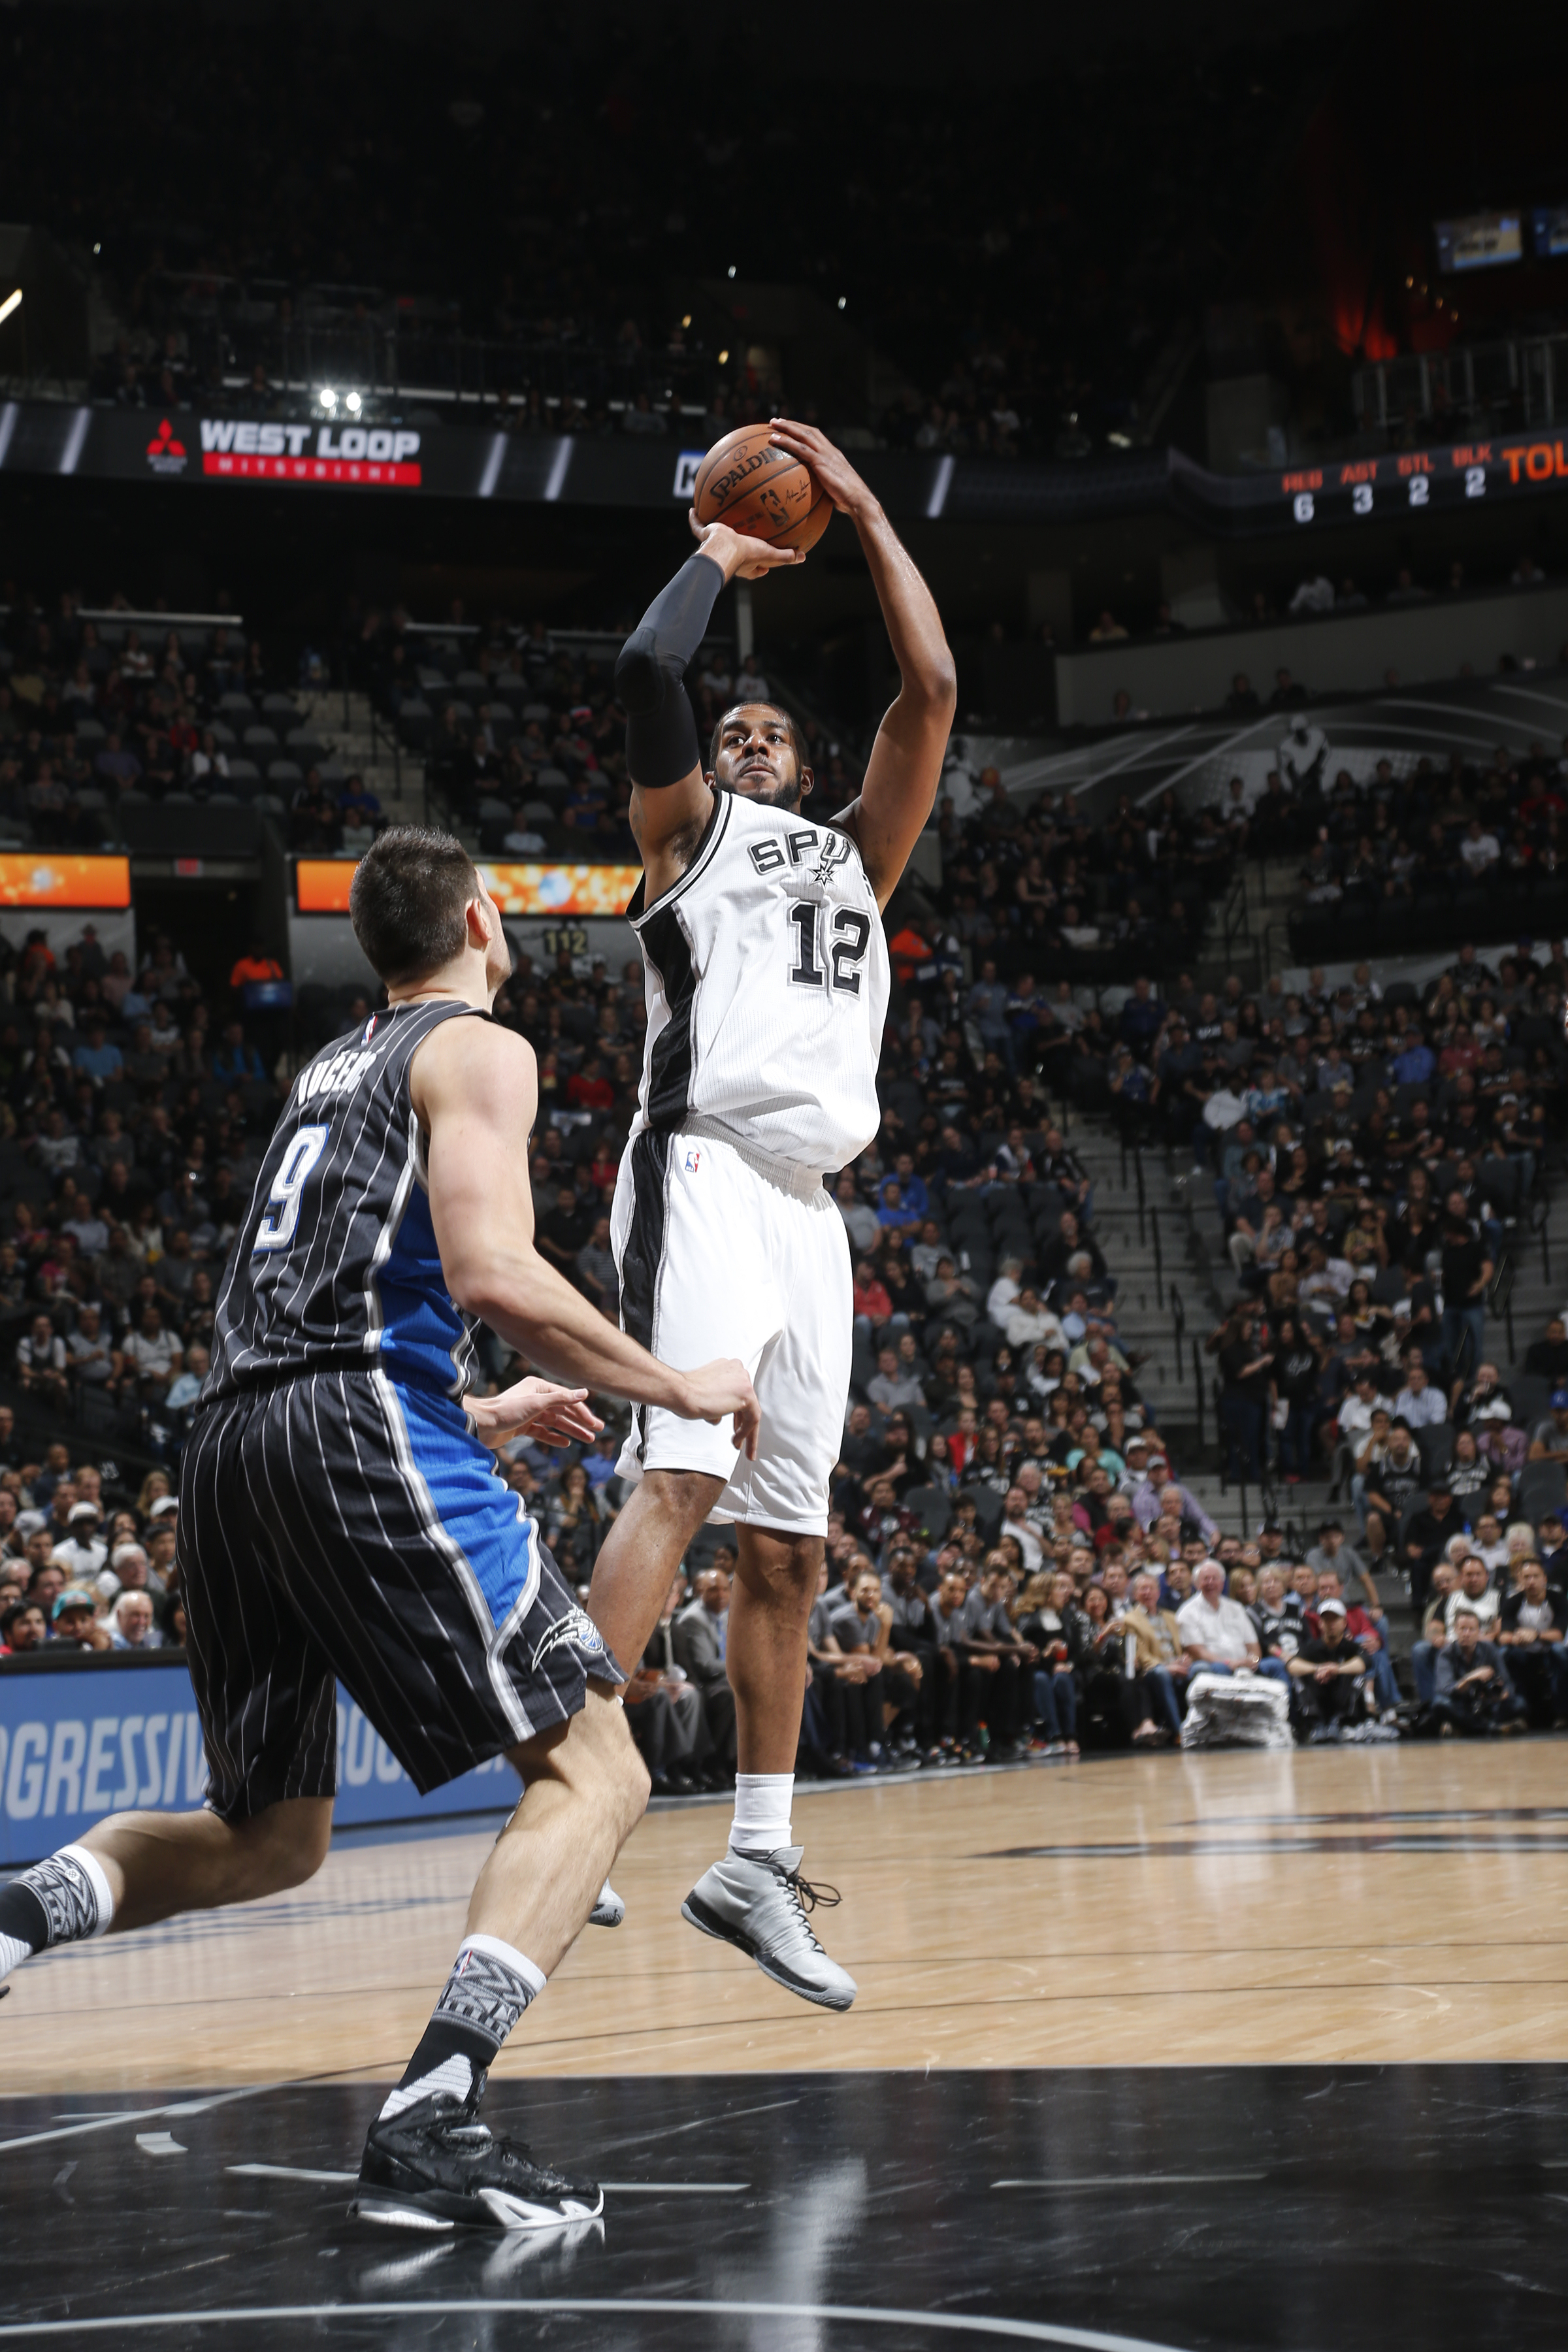 SAN ANTONIO, TX - FEBRUARY 1: LaMarcus Aldridge #12 of the San Antonio Spurs shoots the ball against the Orlando Magic on February 1, 2016 at the AT&T Center in San Antonio, Texas.